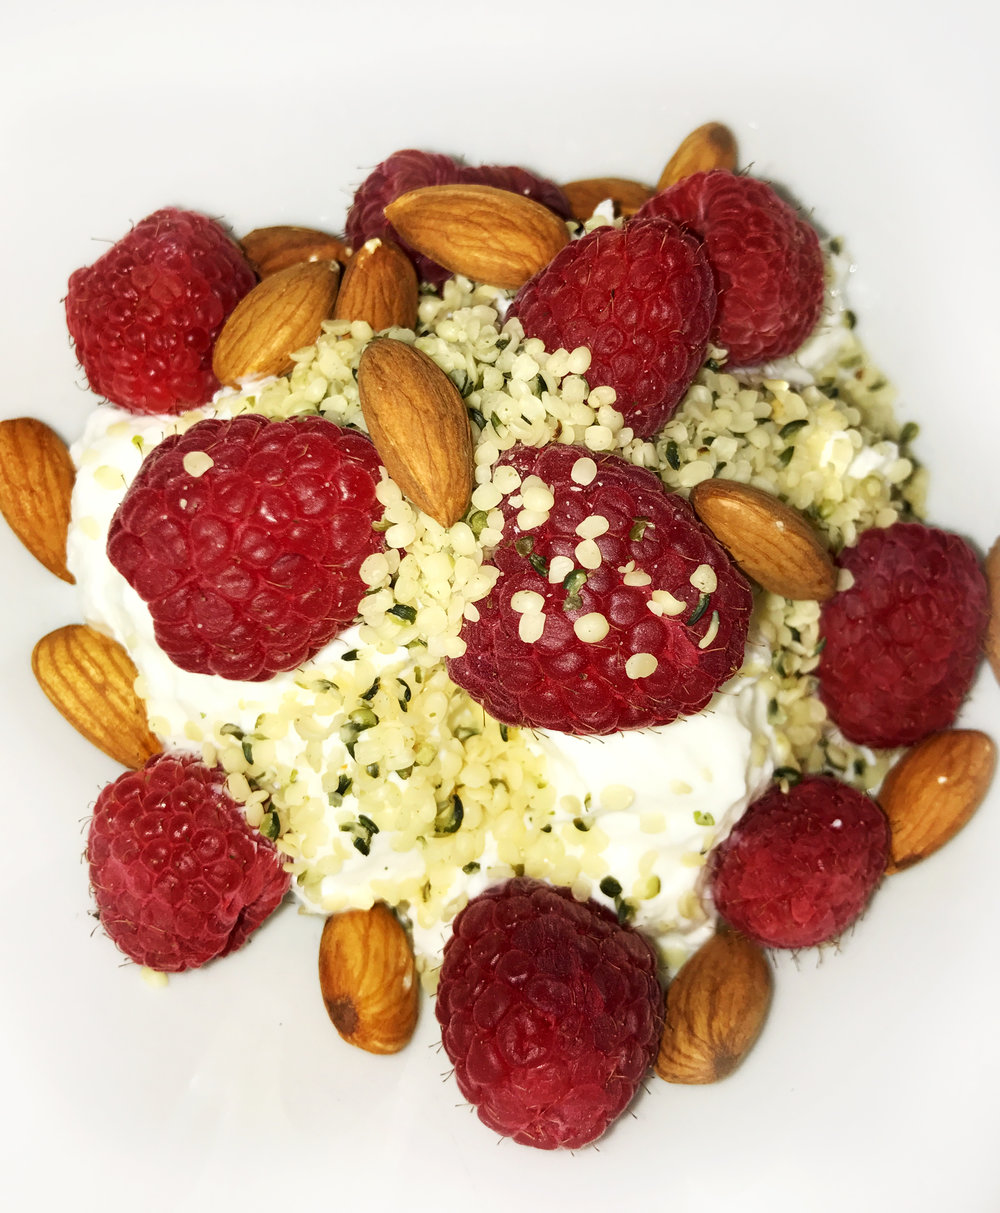 Greek yogurt, berries, almonds and hemp hearts make a delicious snack